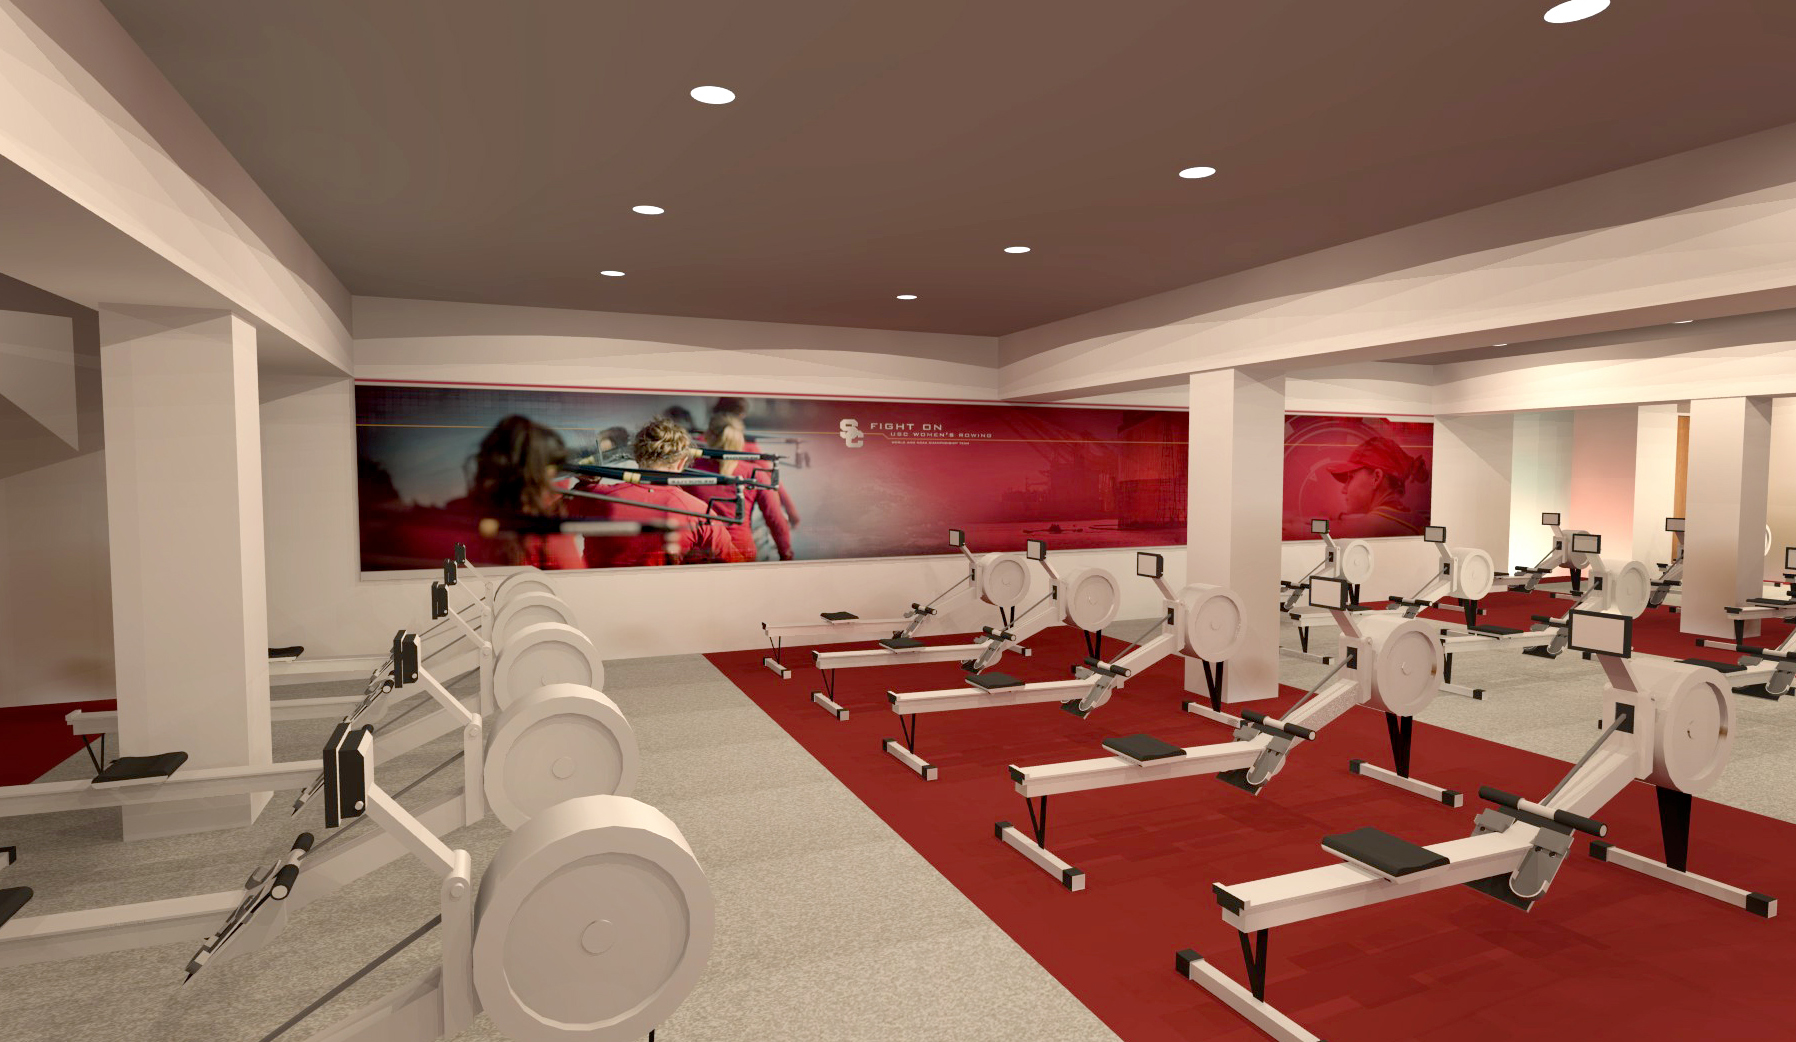 Heritage Hall concept rendering: Rowing training room mural